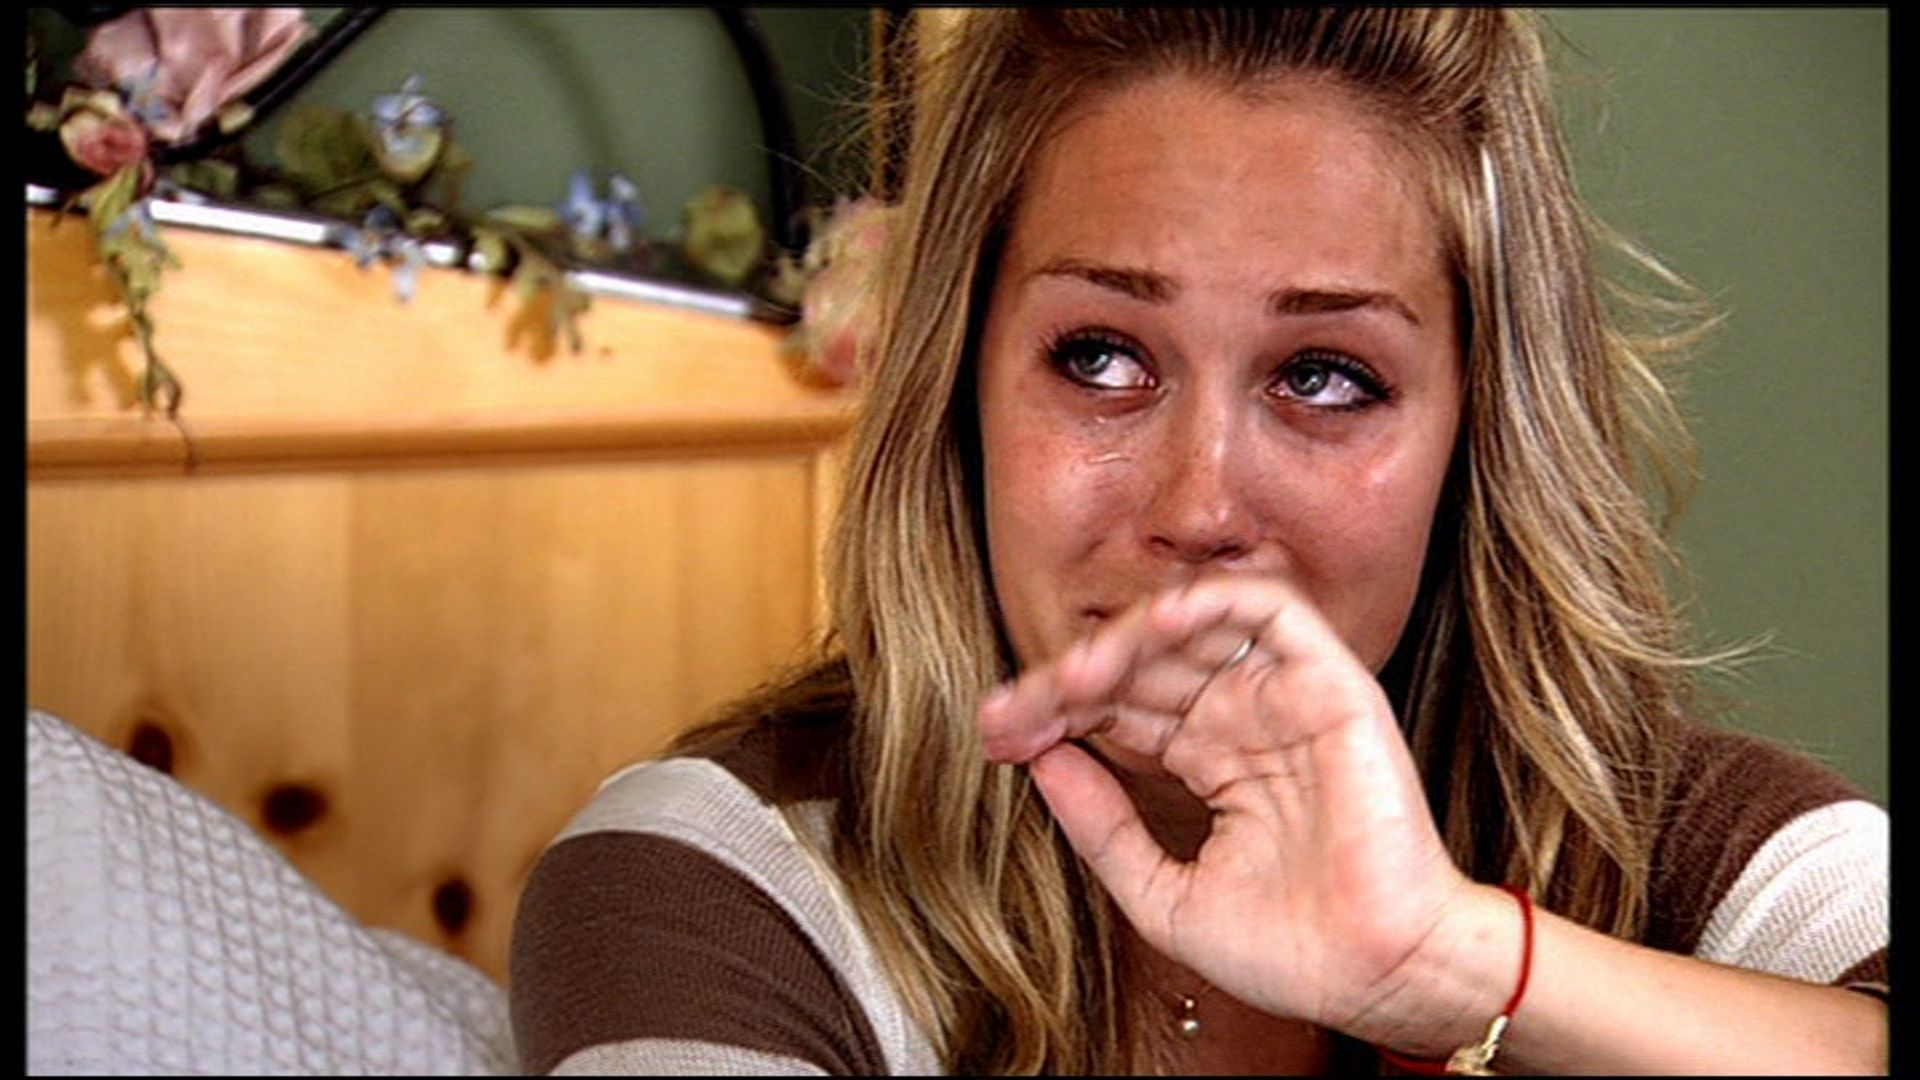 lauren conrad crying